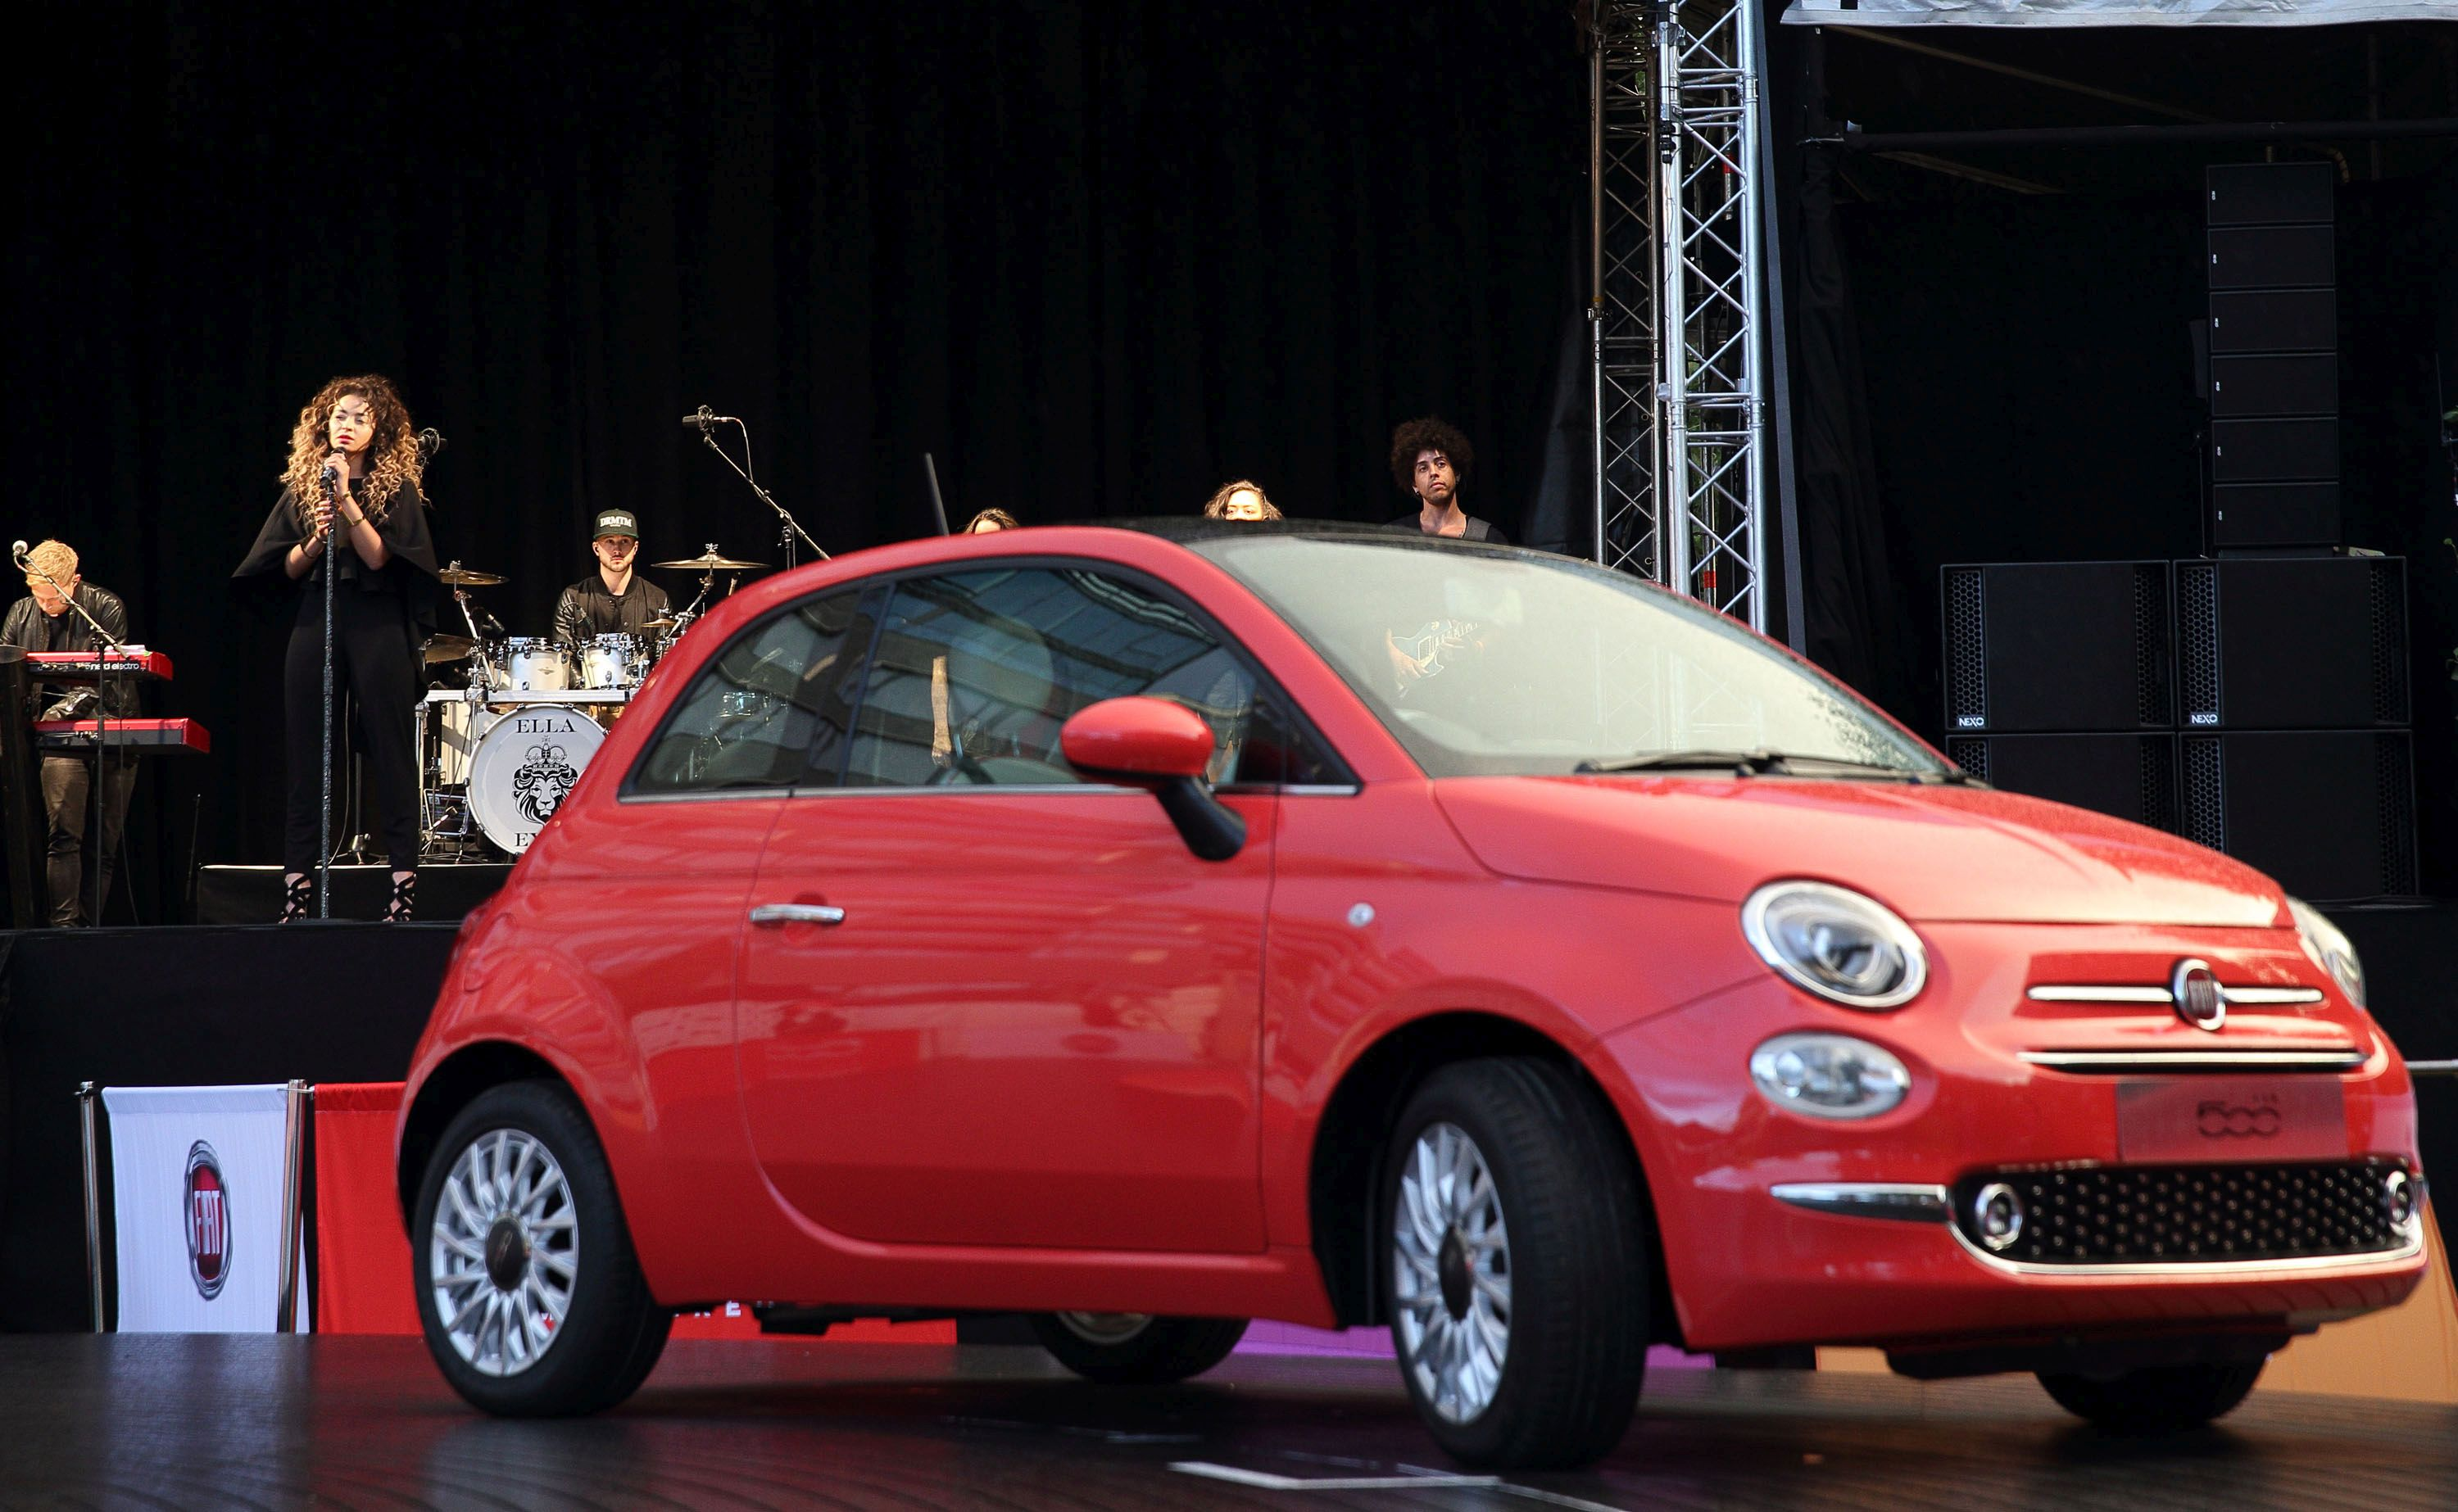 eye product fiat hit set autoblog it itself launch and s t is the selling like to let sit time capsule speak hotcakes uk market isn back everywhere for about on london but